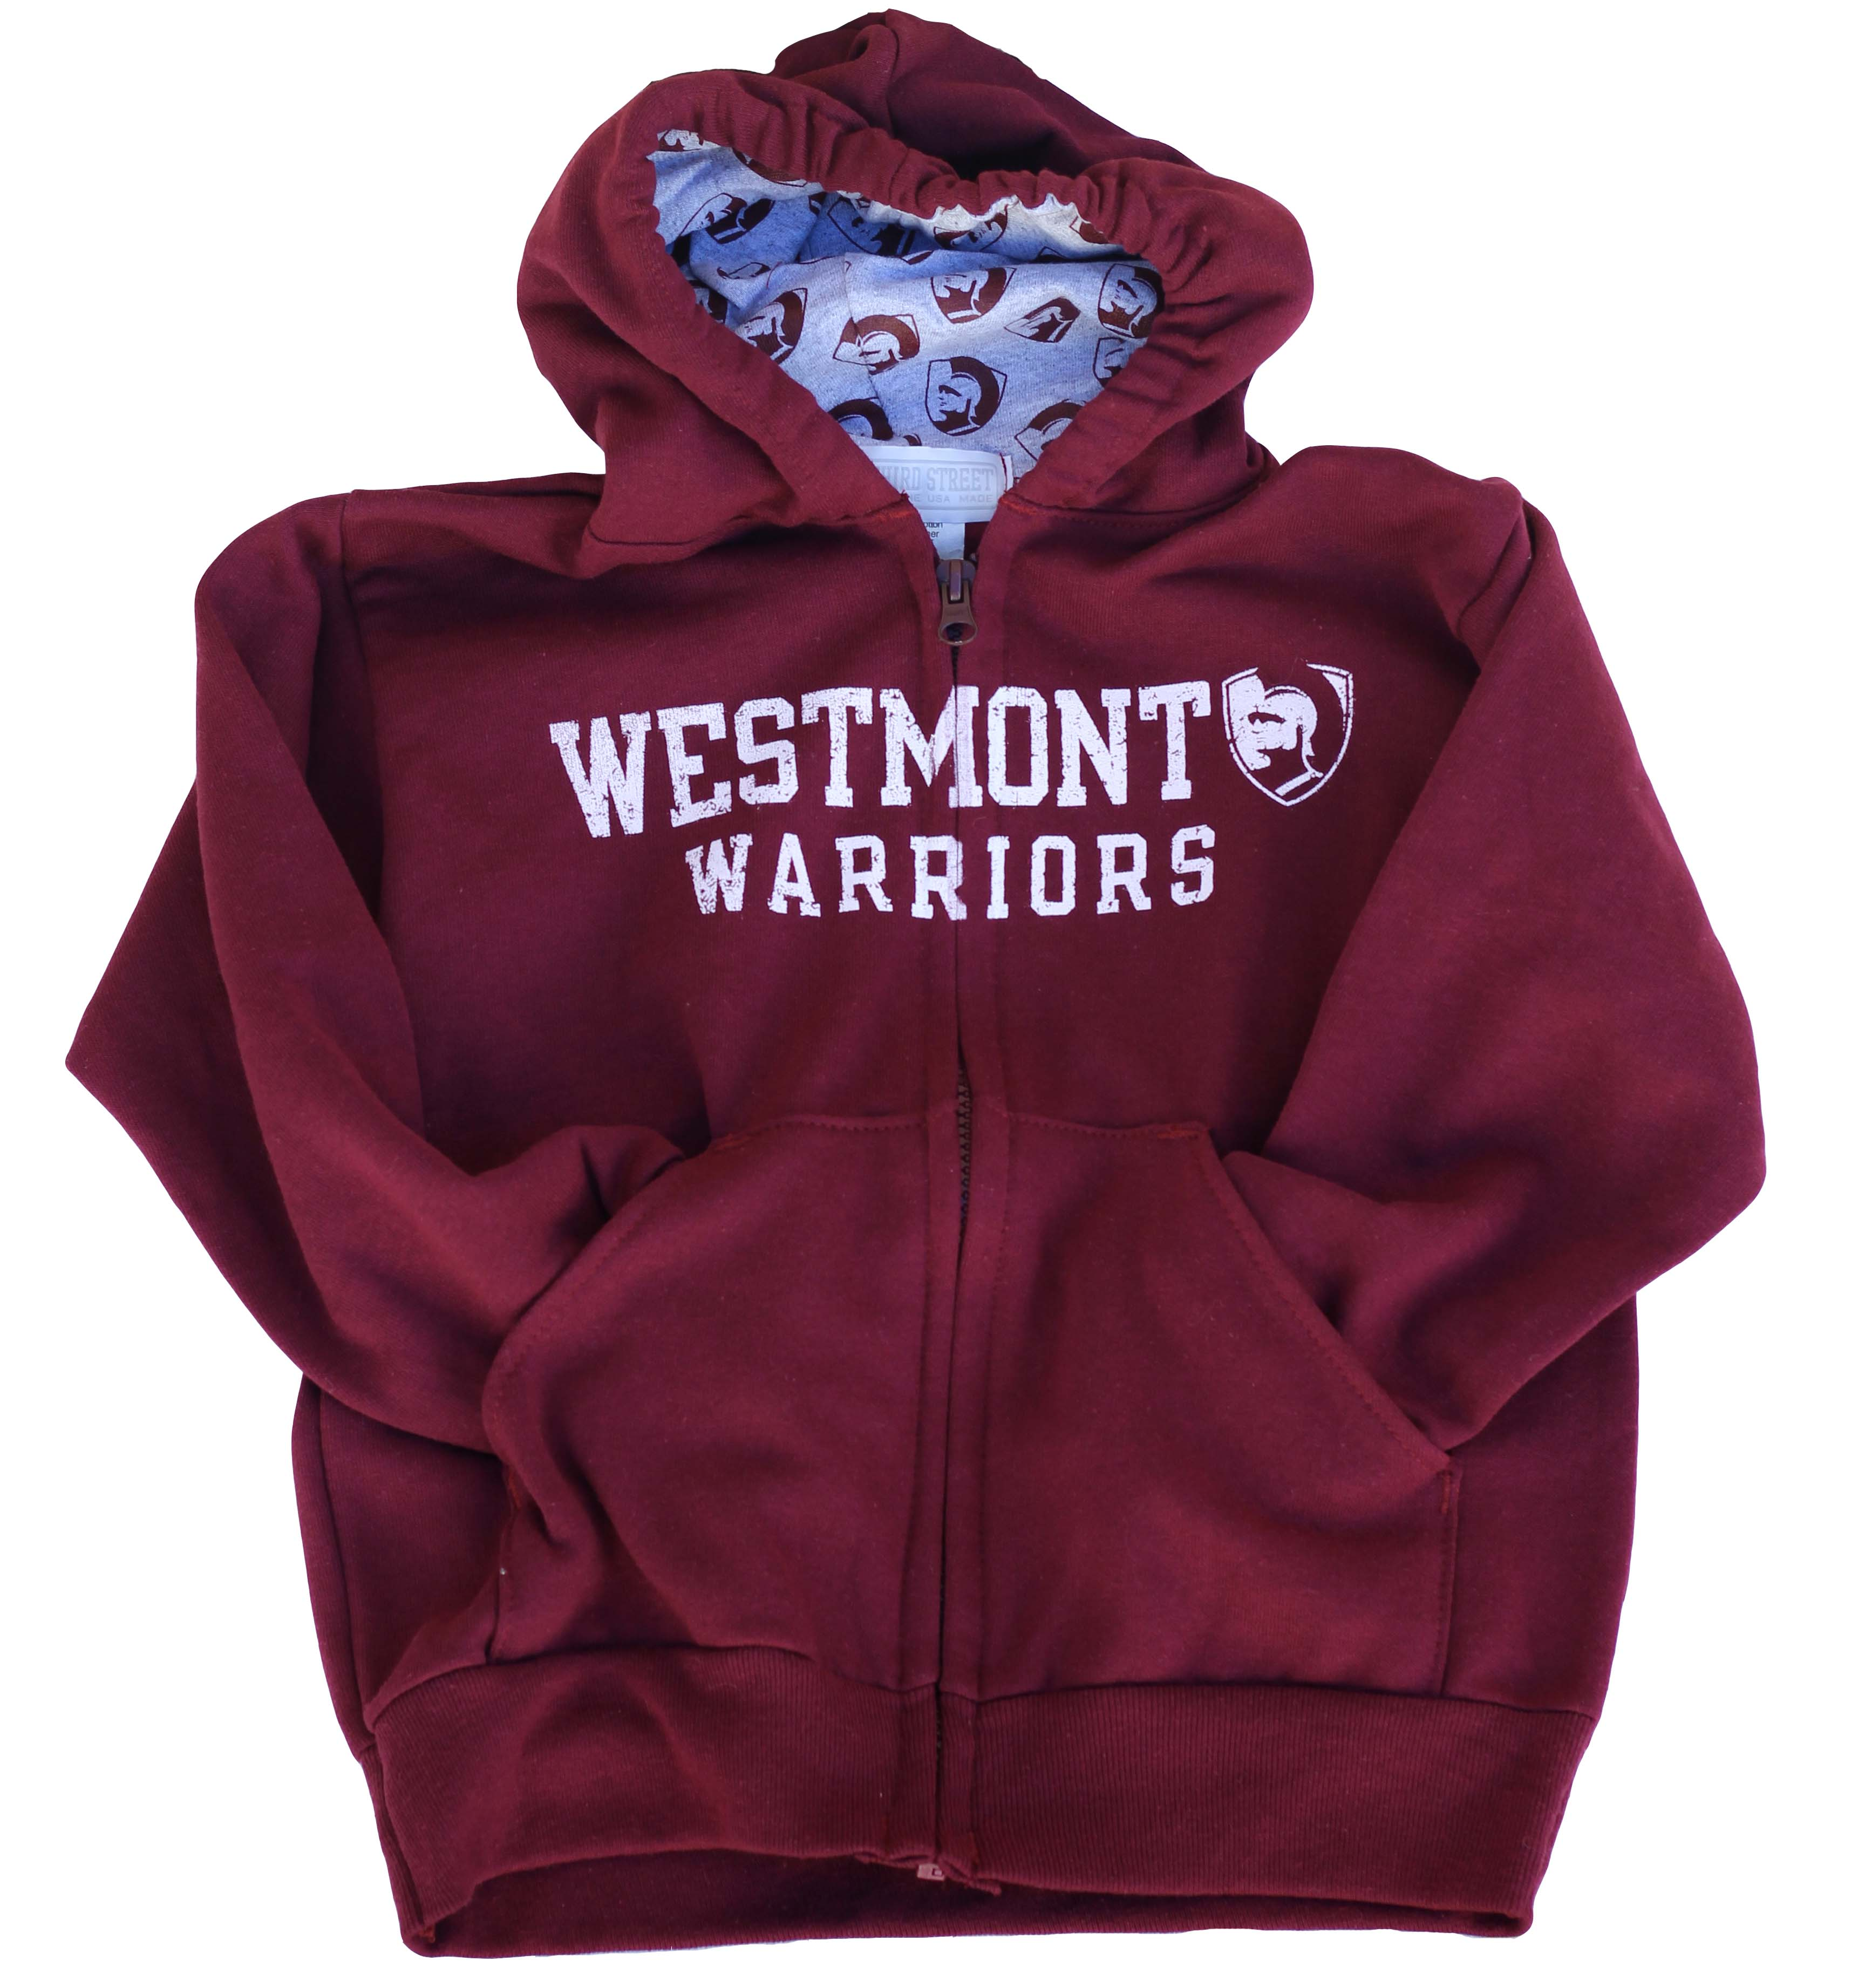 Image for the Third Street Warriors Zip Hoodie product